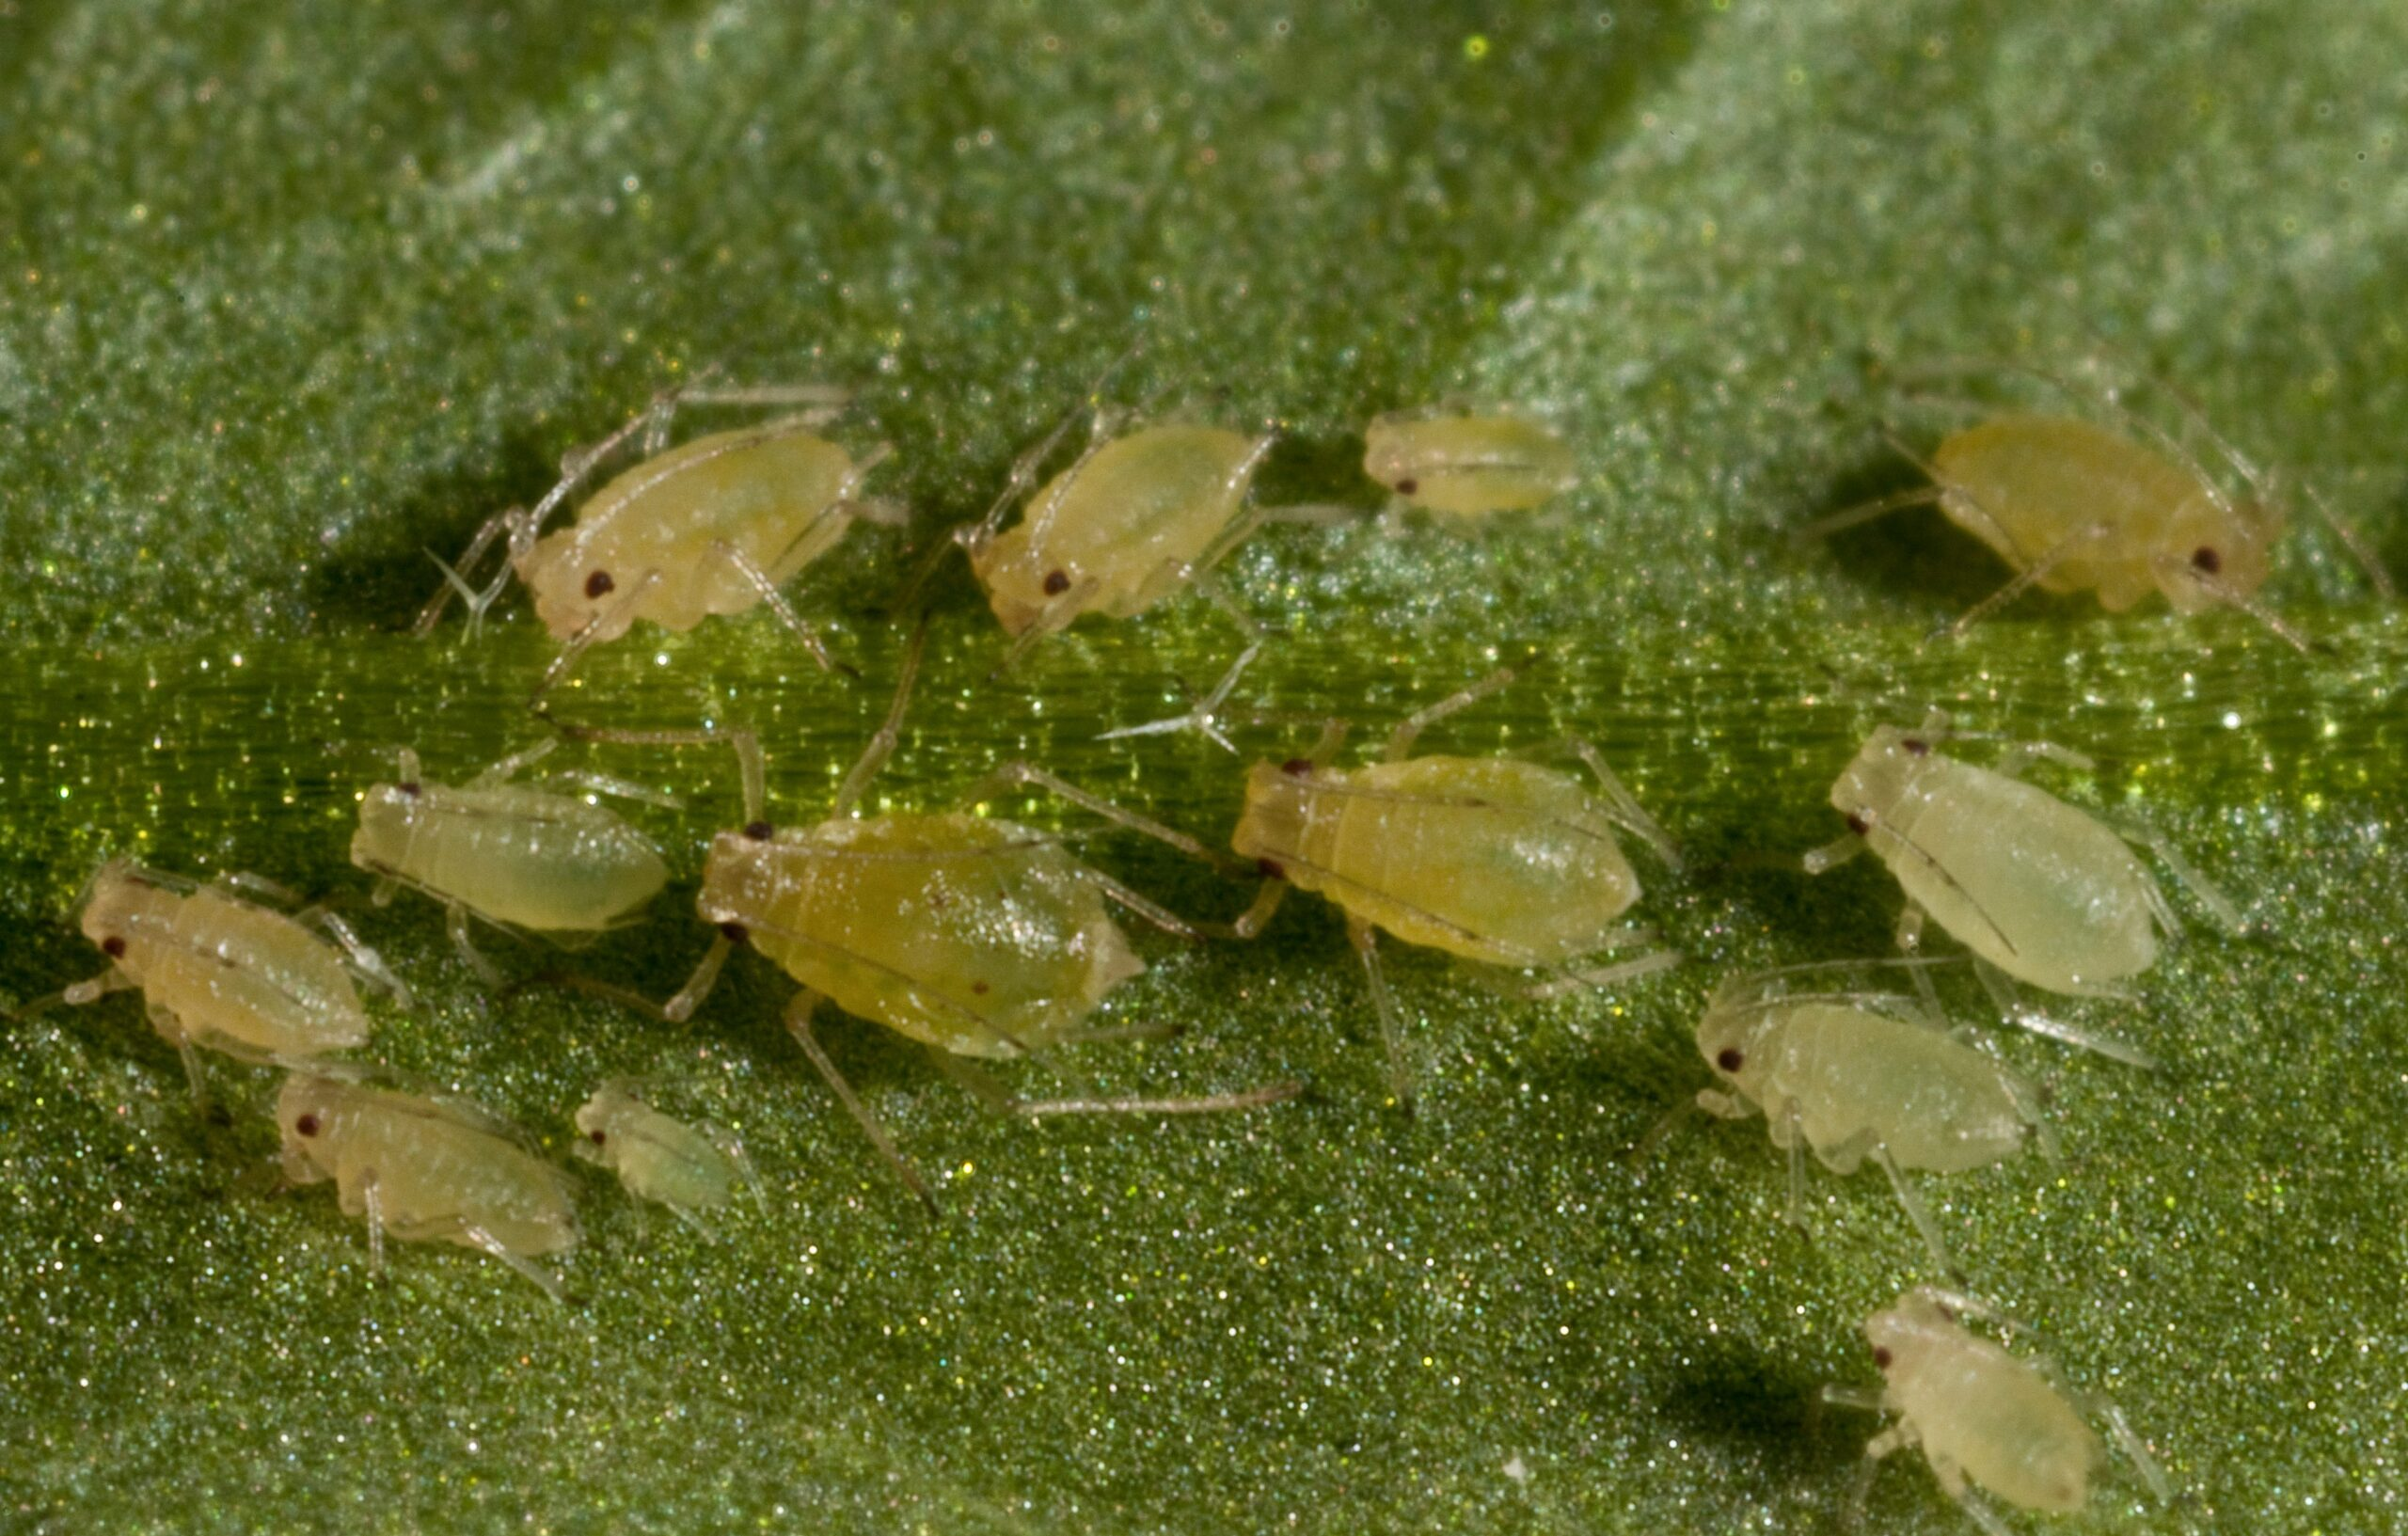 Apterous Myzuz persicae adults and nymphs on Arabidopsis thaliana